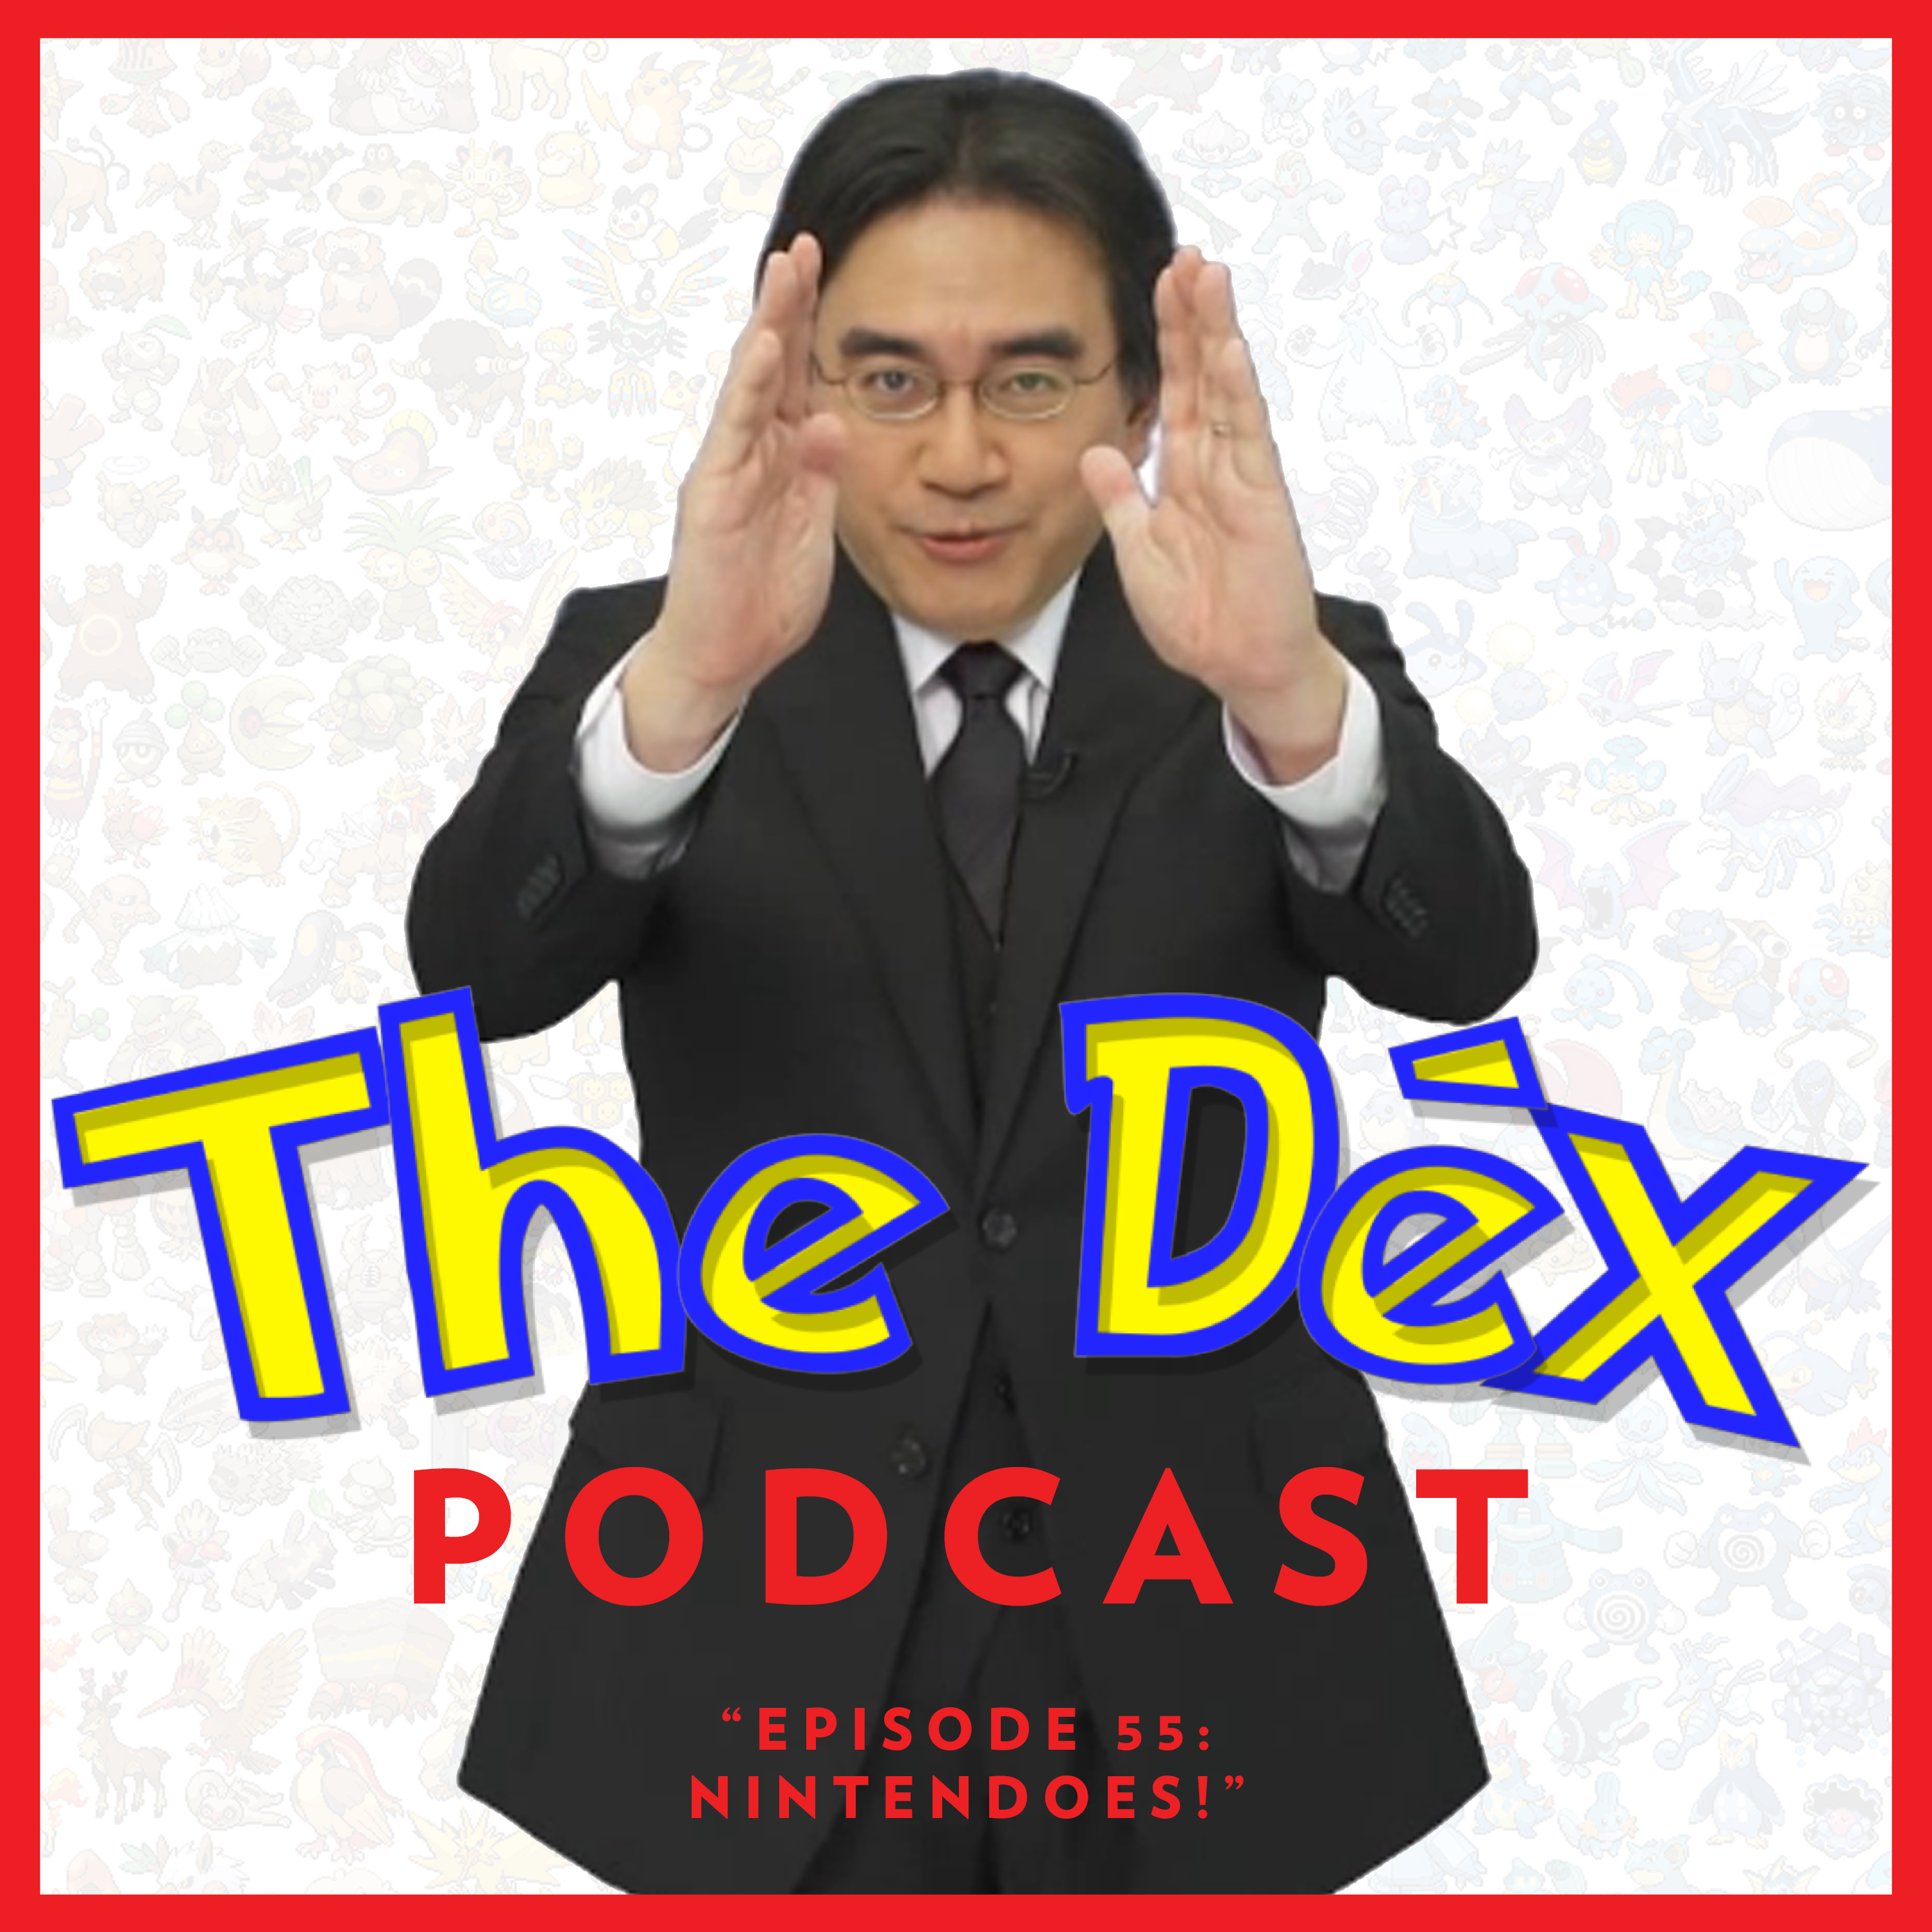 The Dex! Podcast #55: Nintendoes!